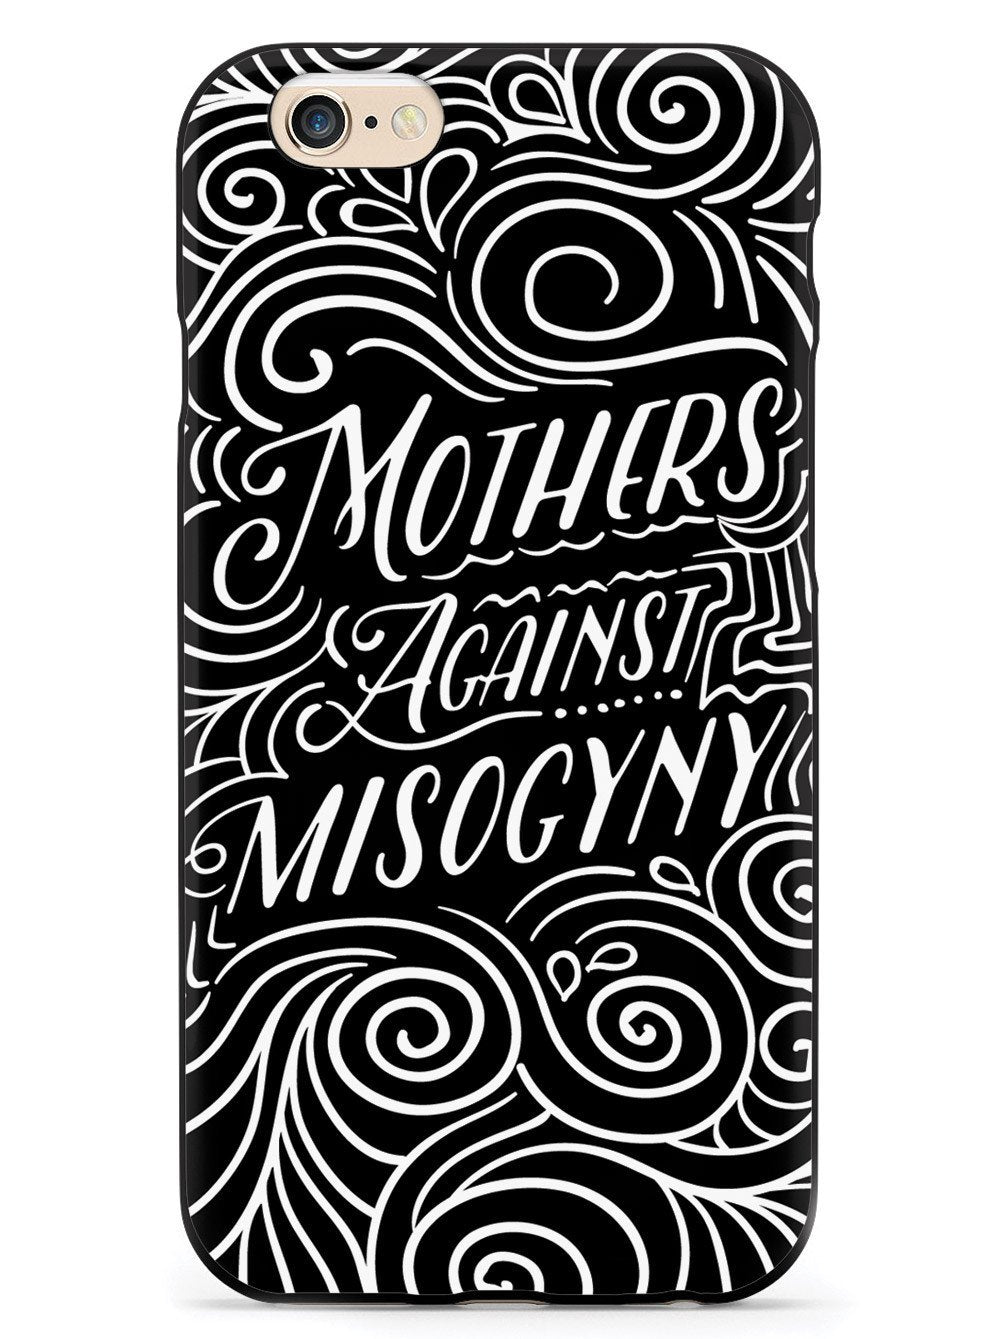 Mothers Against Misogyny  - Black Case - pipercleo.com